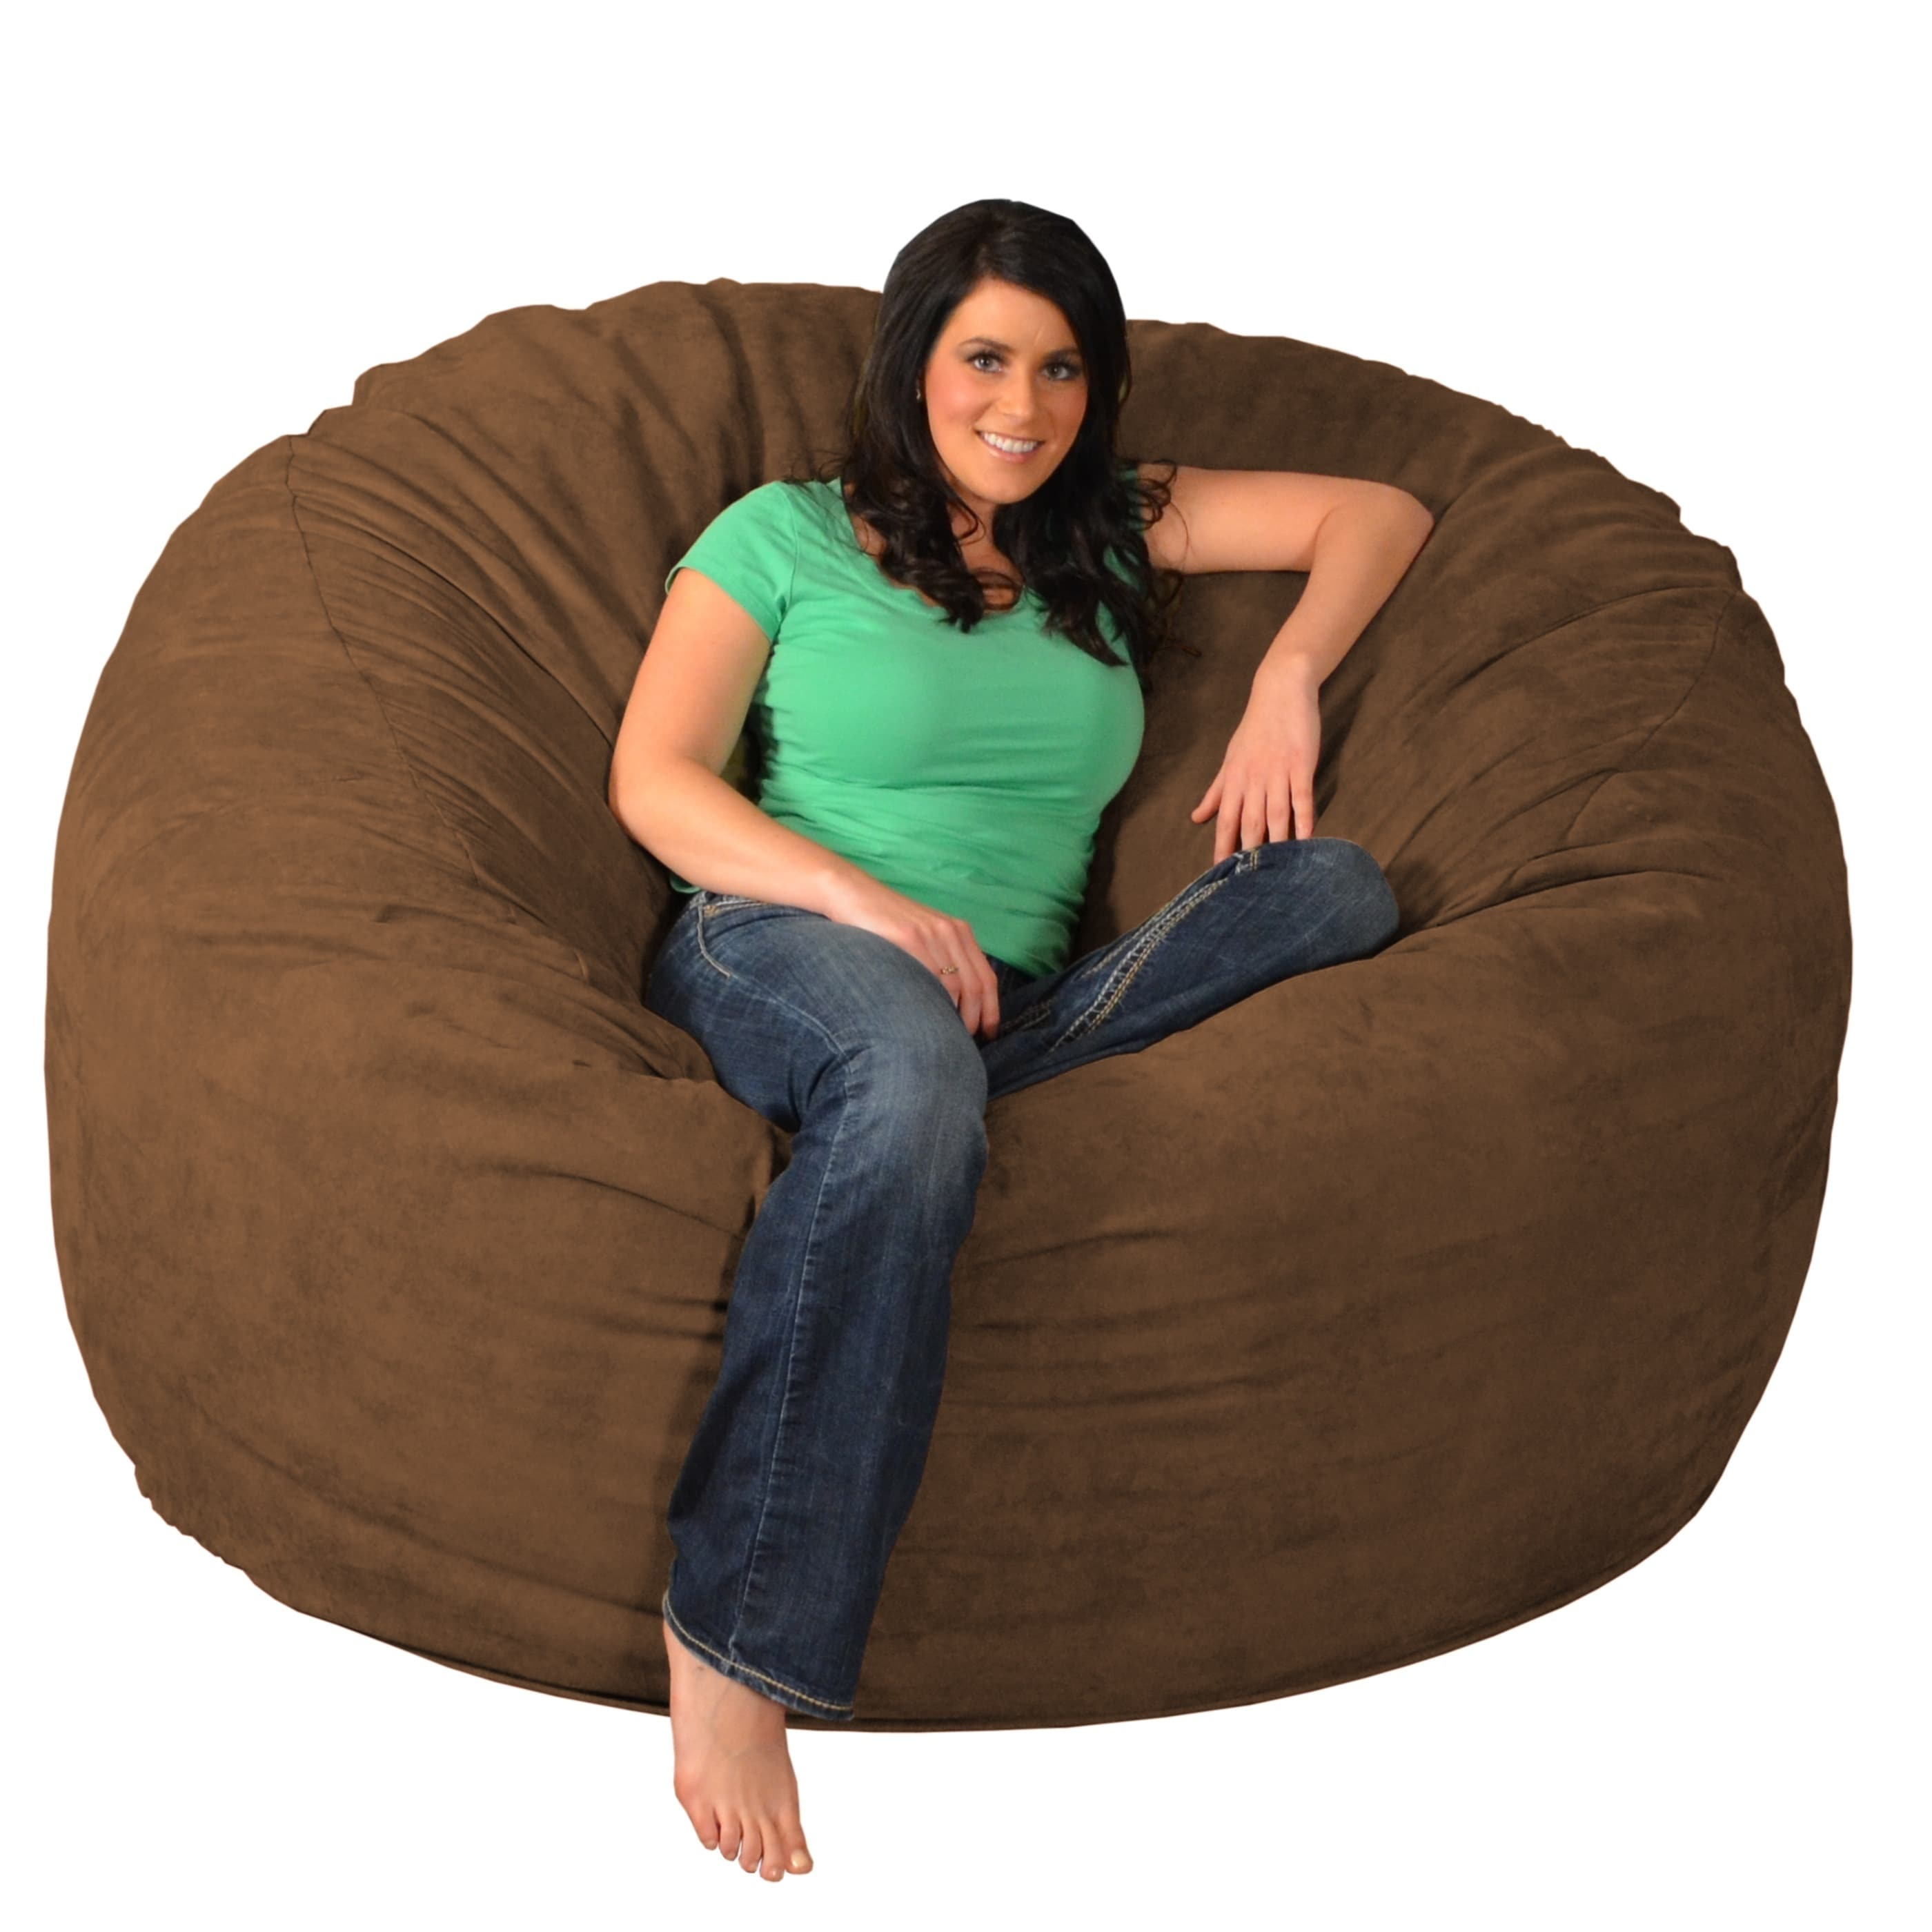 Tremendous Giant Memory Foam Bean Bag 6 Foot Chair Machost Co Dining Chair Design Ideas Machostcouk